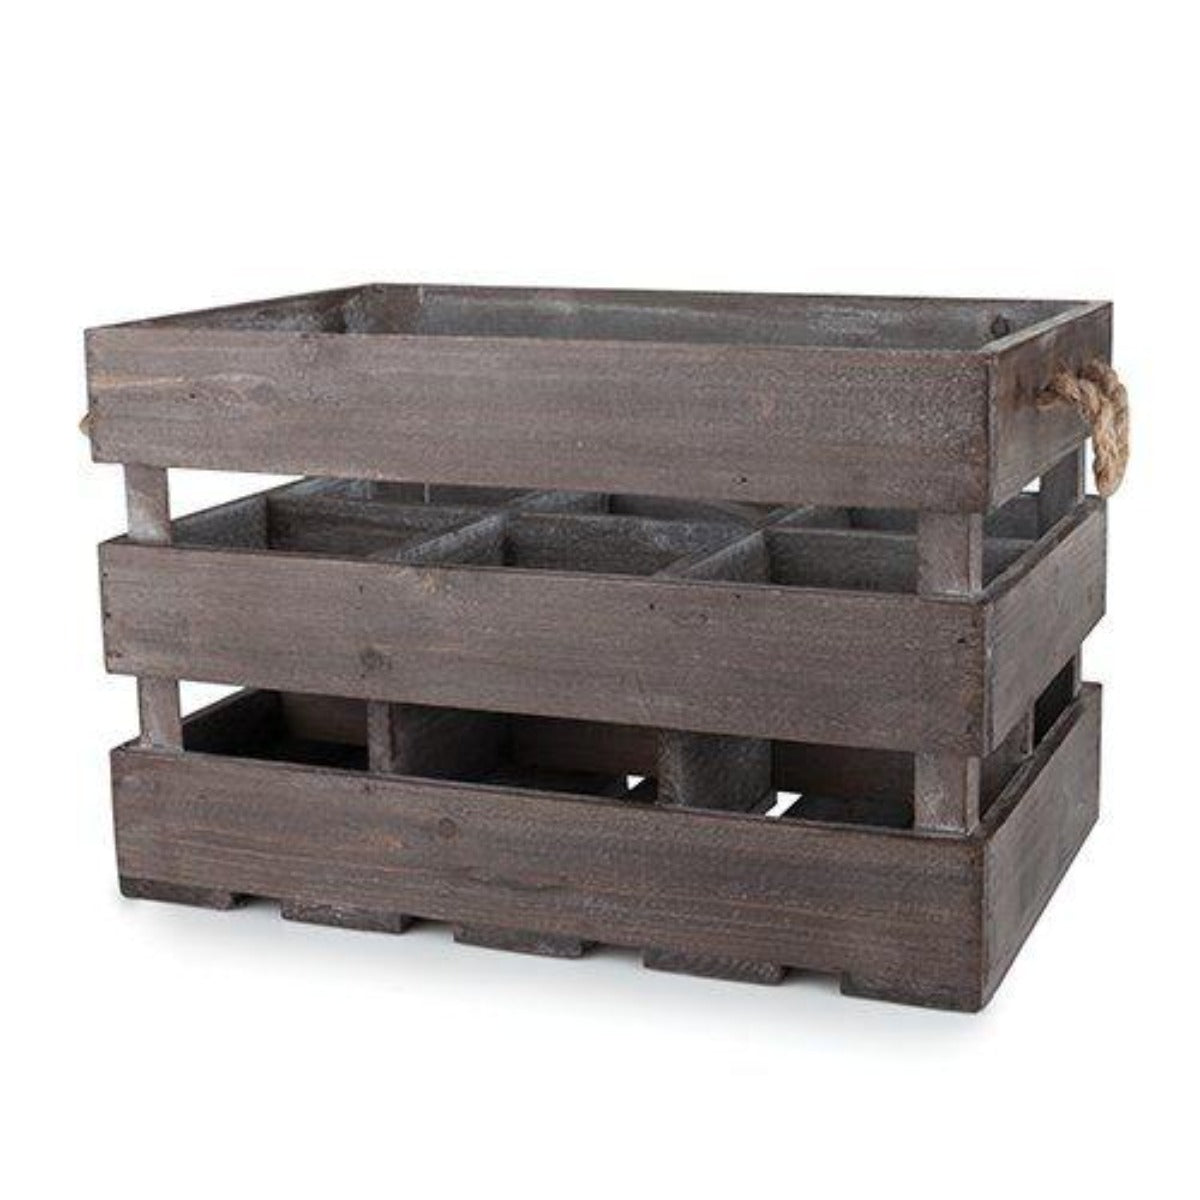 Wooden Bottle Crate